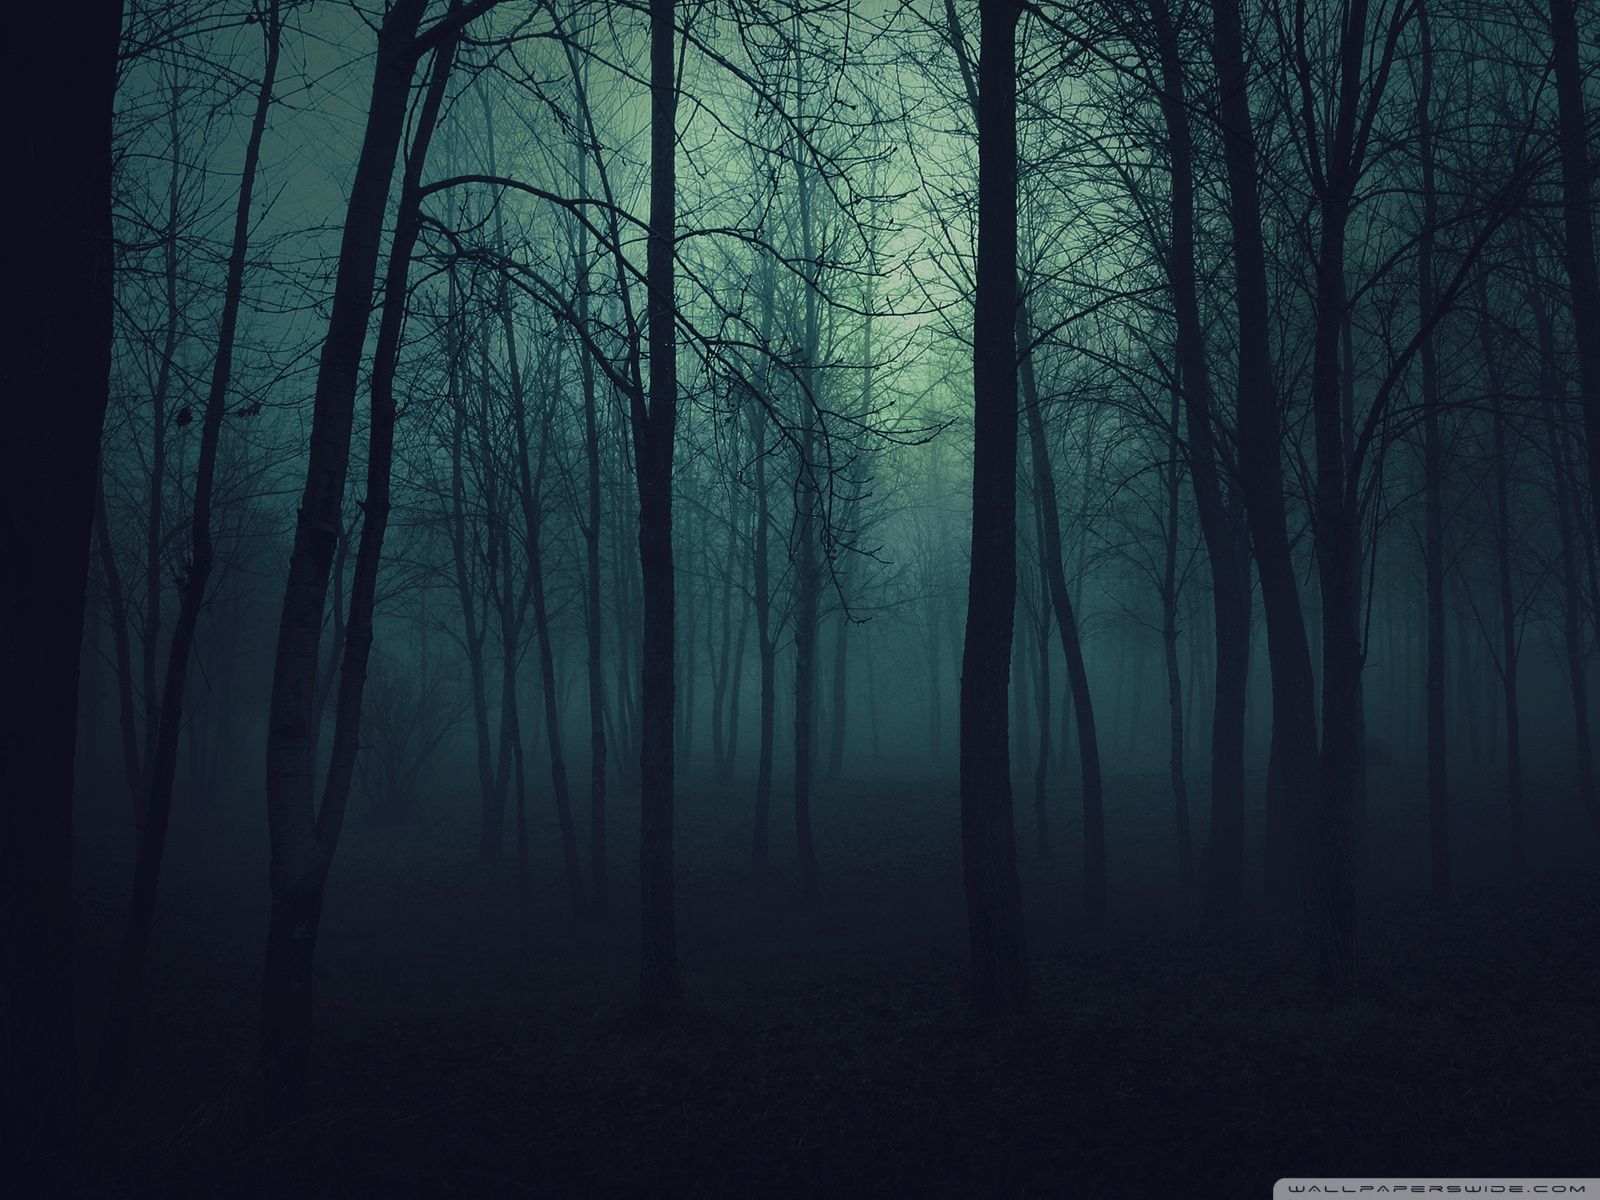 Dark Forest 4k Ultra Hd Wallpapers Top Free Dark Forest 4k Ultra Hd Backgrounds Wallpaperaccess